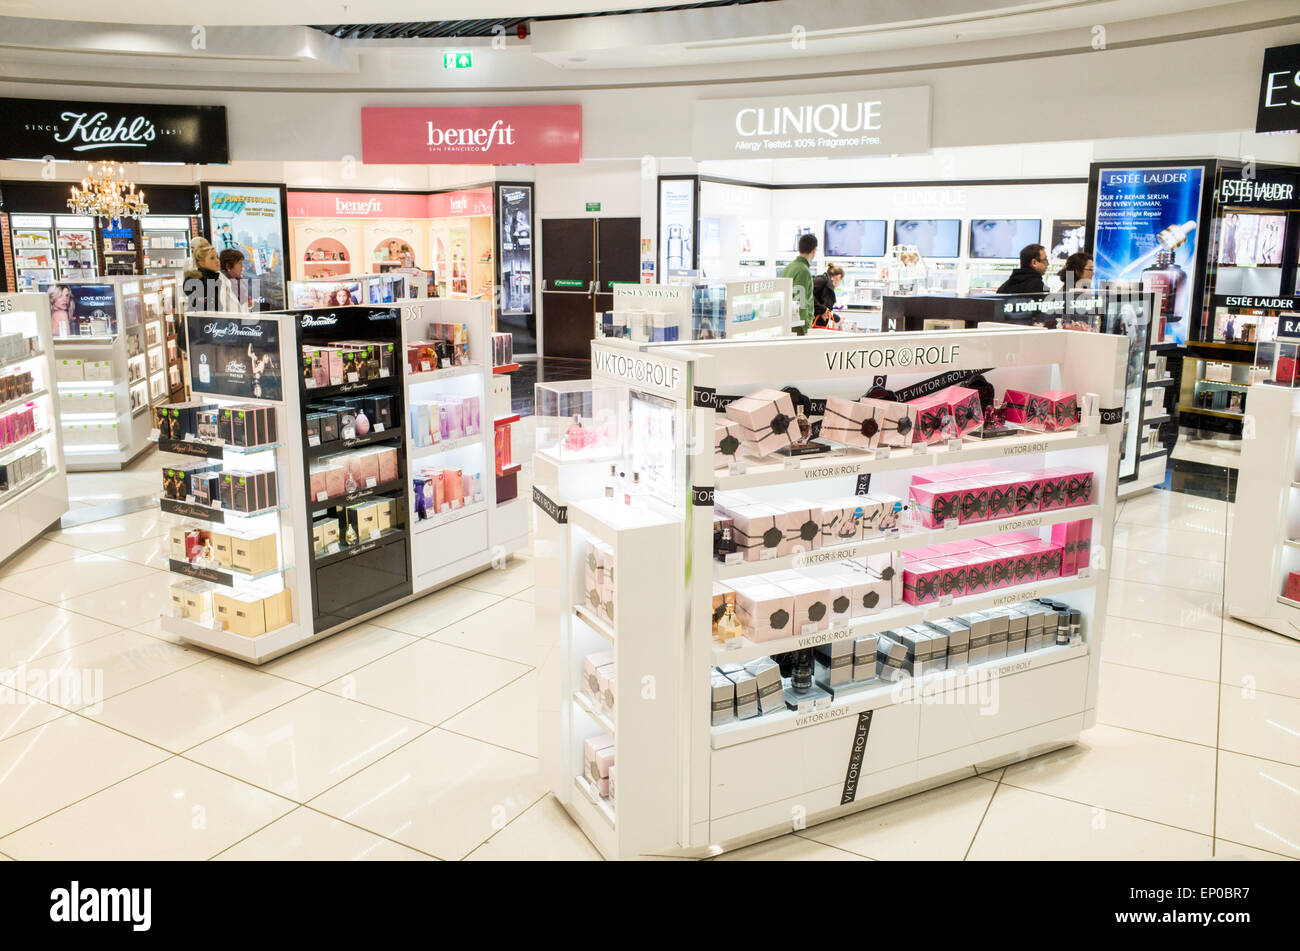 51757a60f672 Duty Free Stores Stock Photos   Duty Free Stores Stock Images - Alamy